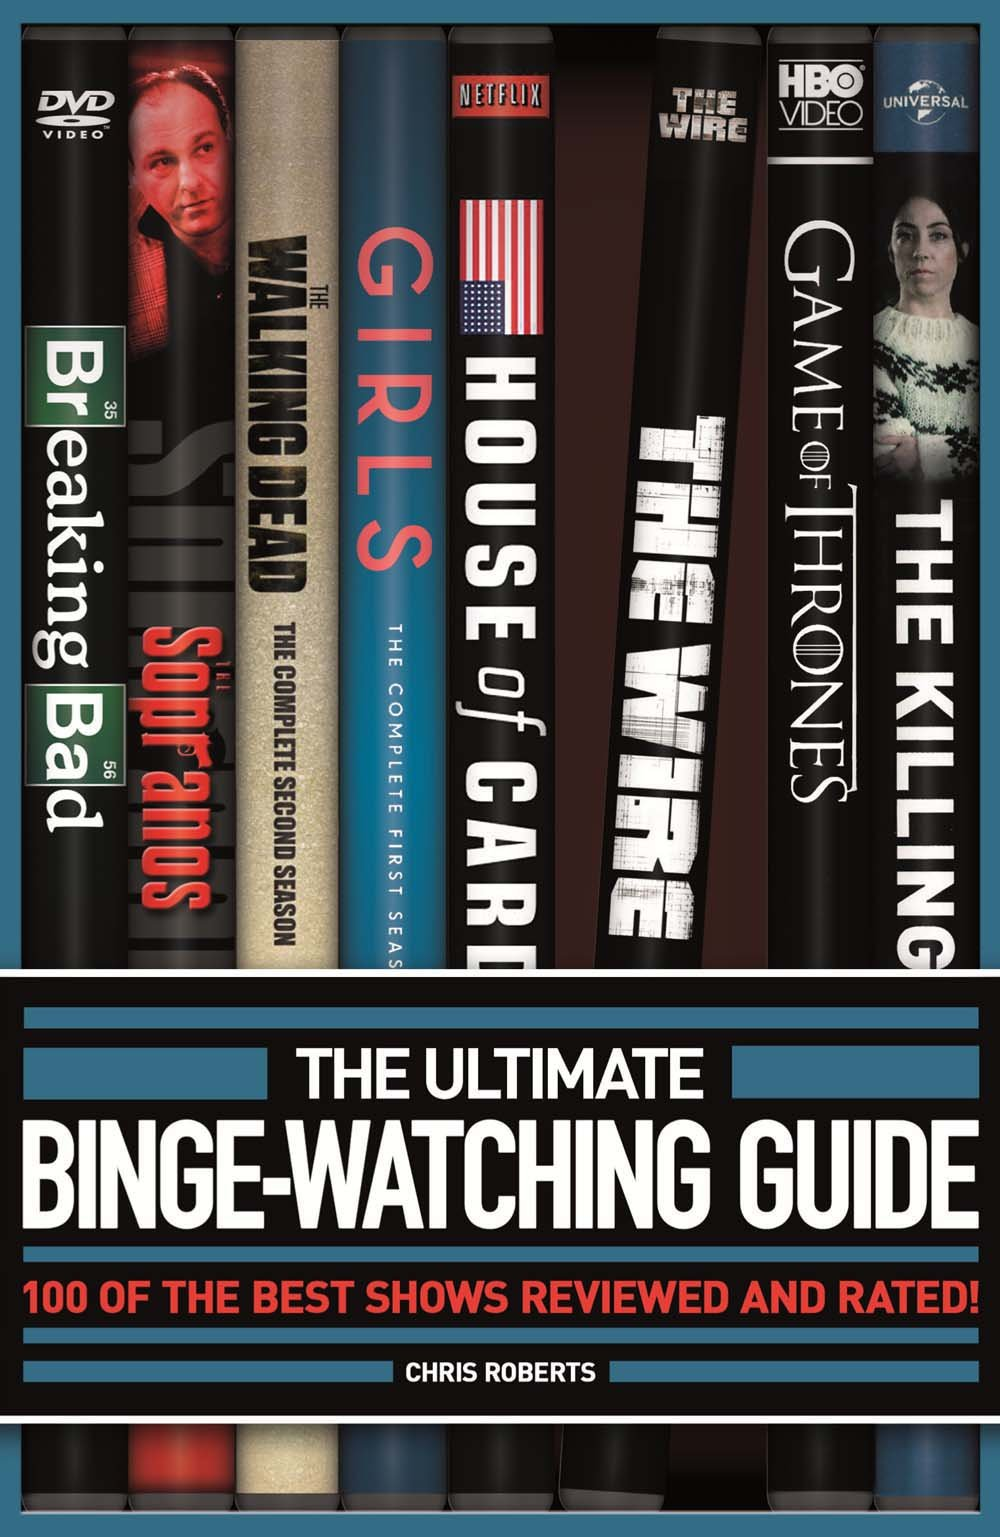 The Ultimate Binge-Watching Guide: 100 of the Best Shows